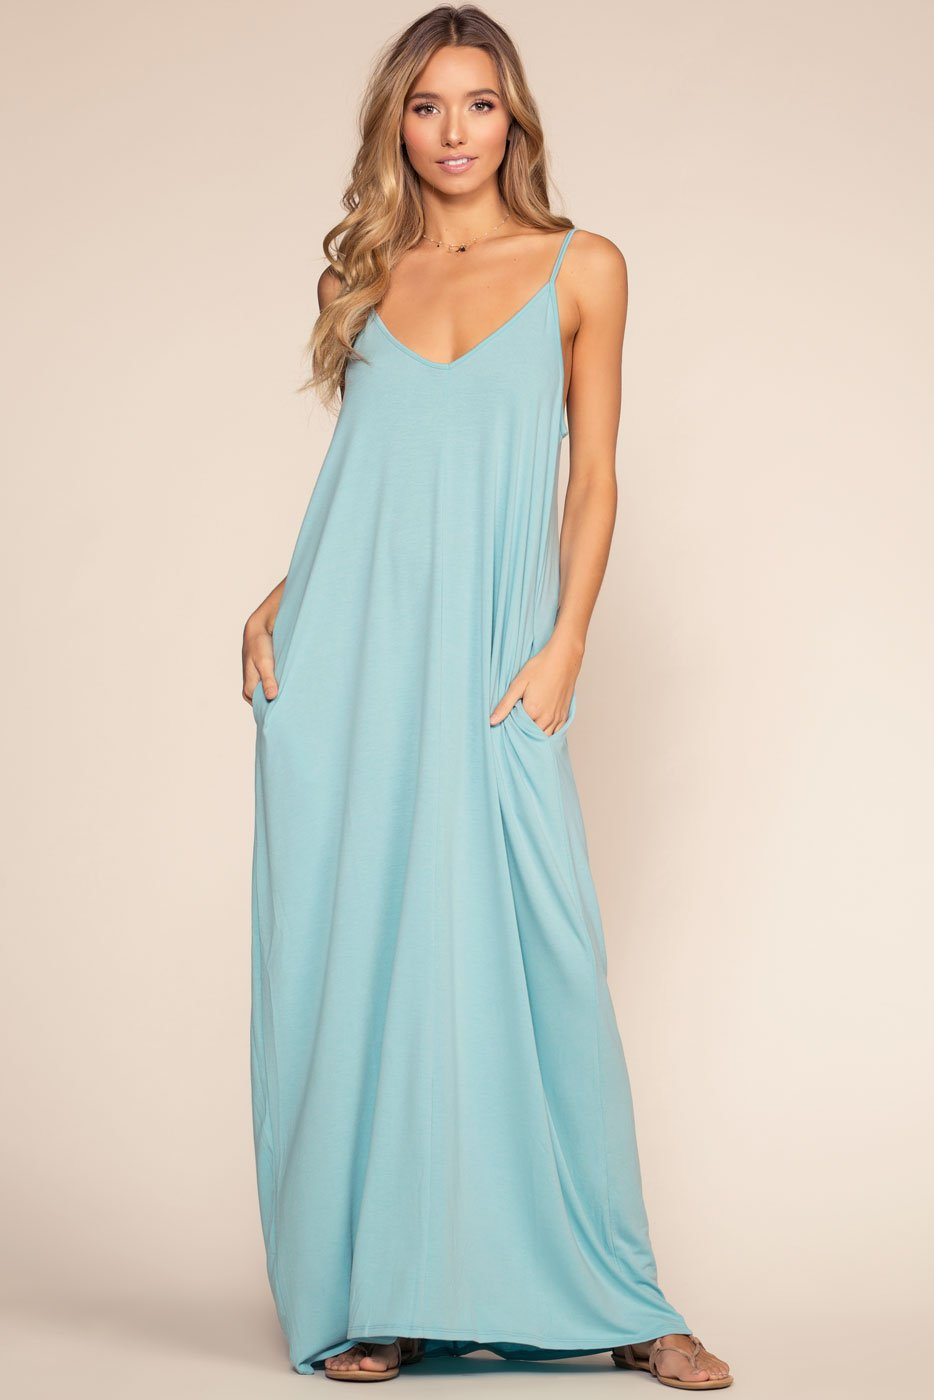 Dresses - Sunup To Sundown Maxi Dress - Blue